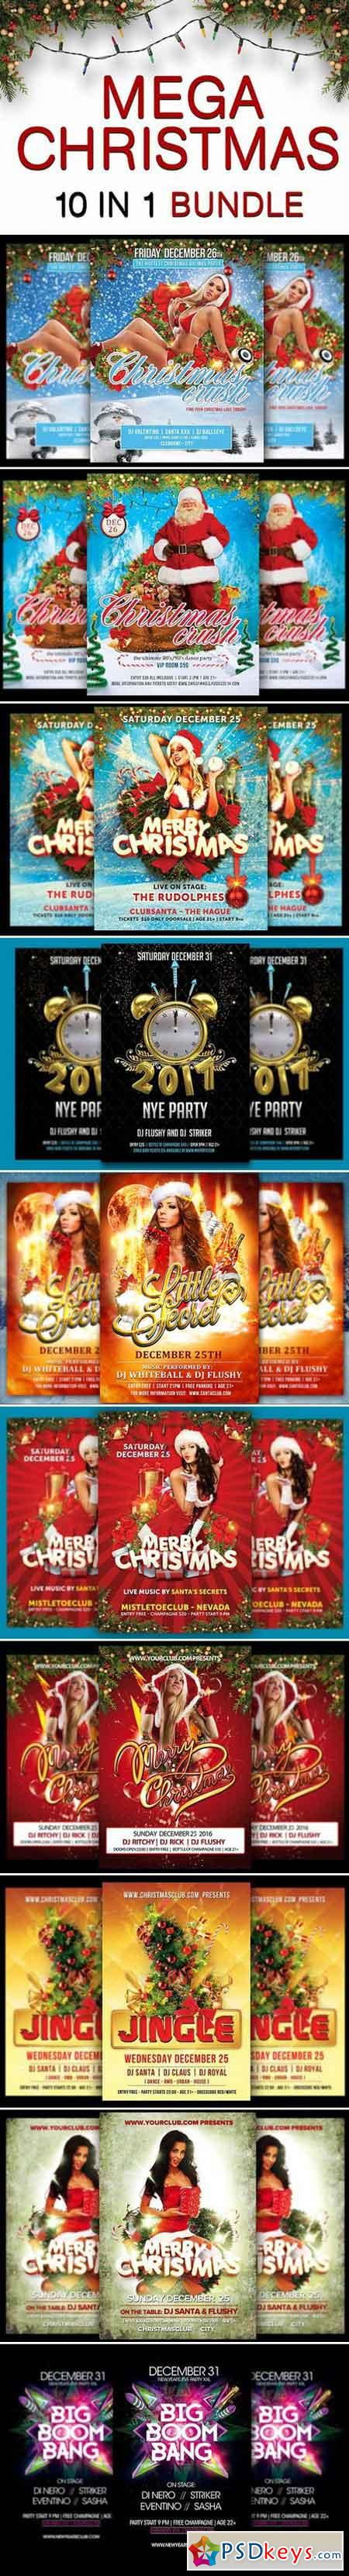 Mega Christmas & NYE Flyer Bundle 981036